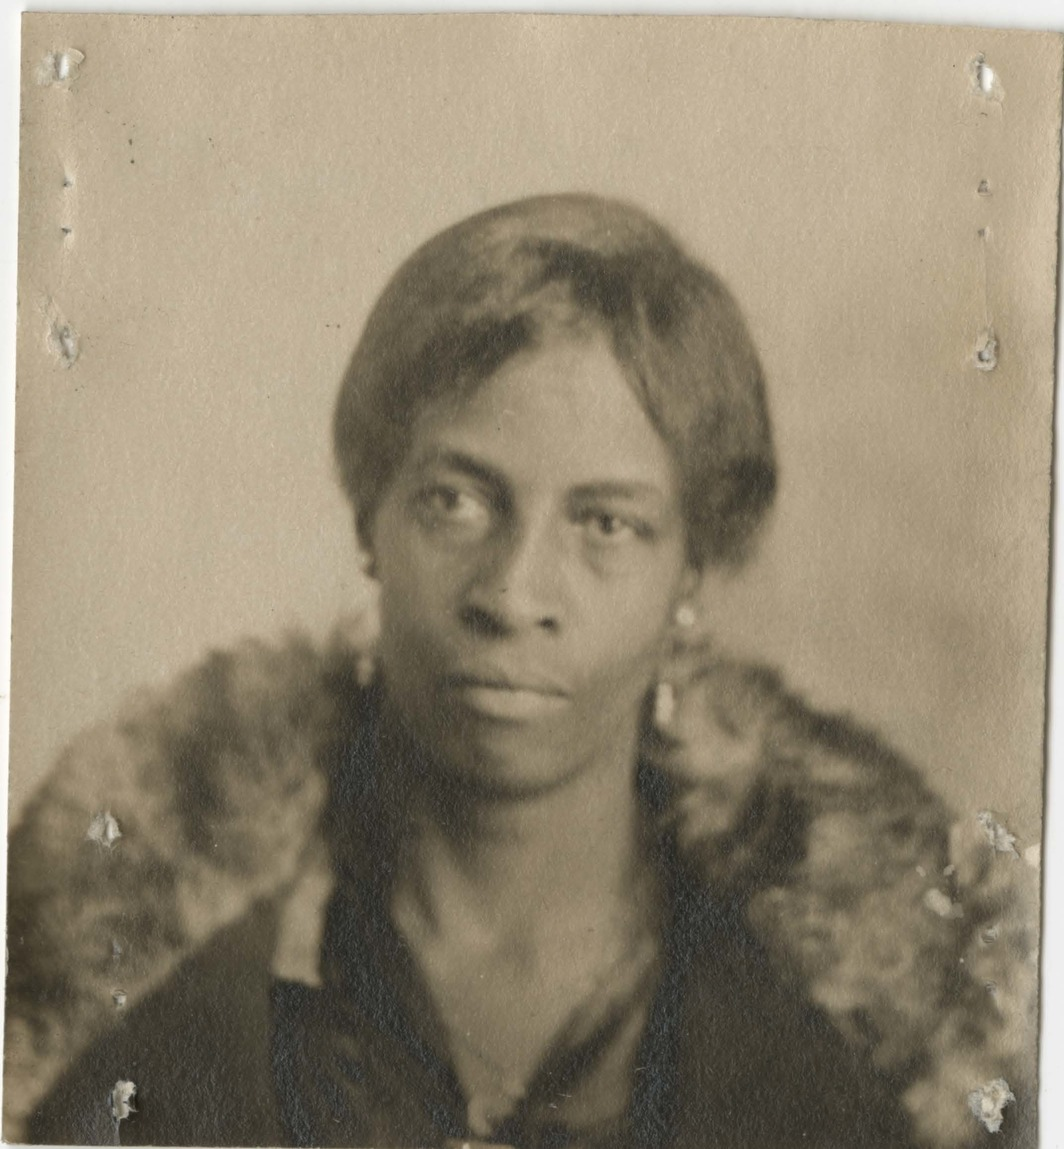 Photograph of Ella Watson from her personnel file at the National Archives and Records Administration, ca. 1920s.